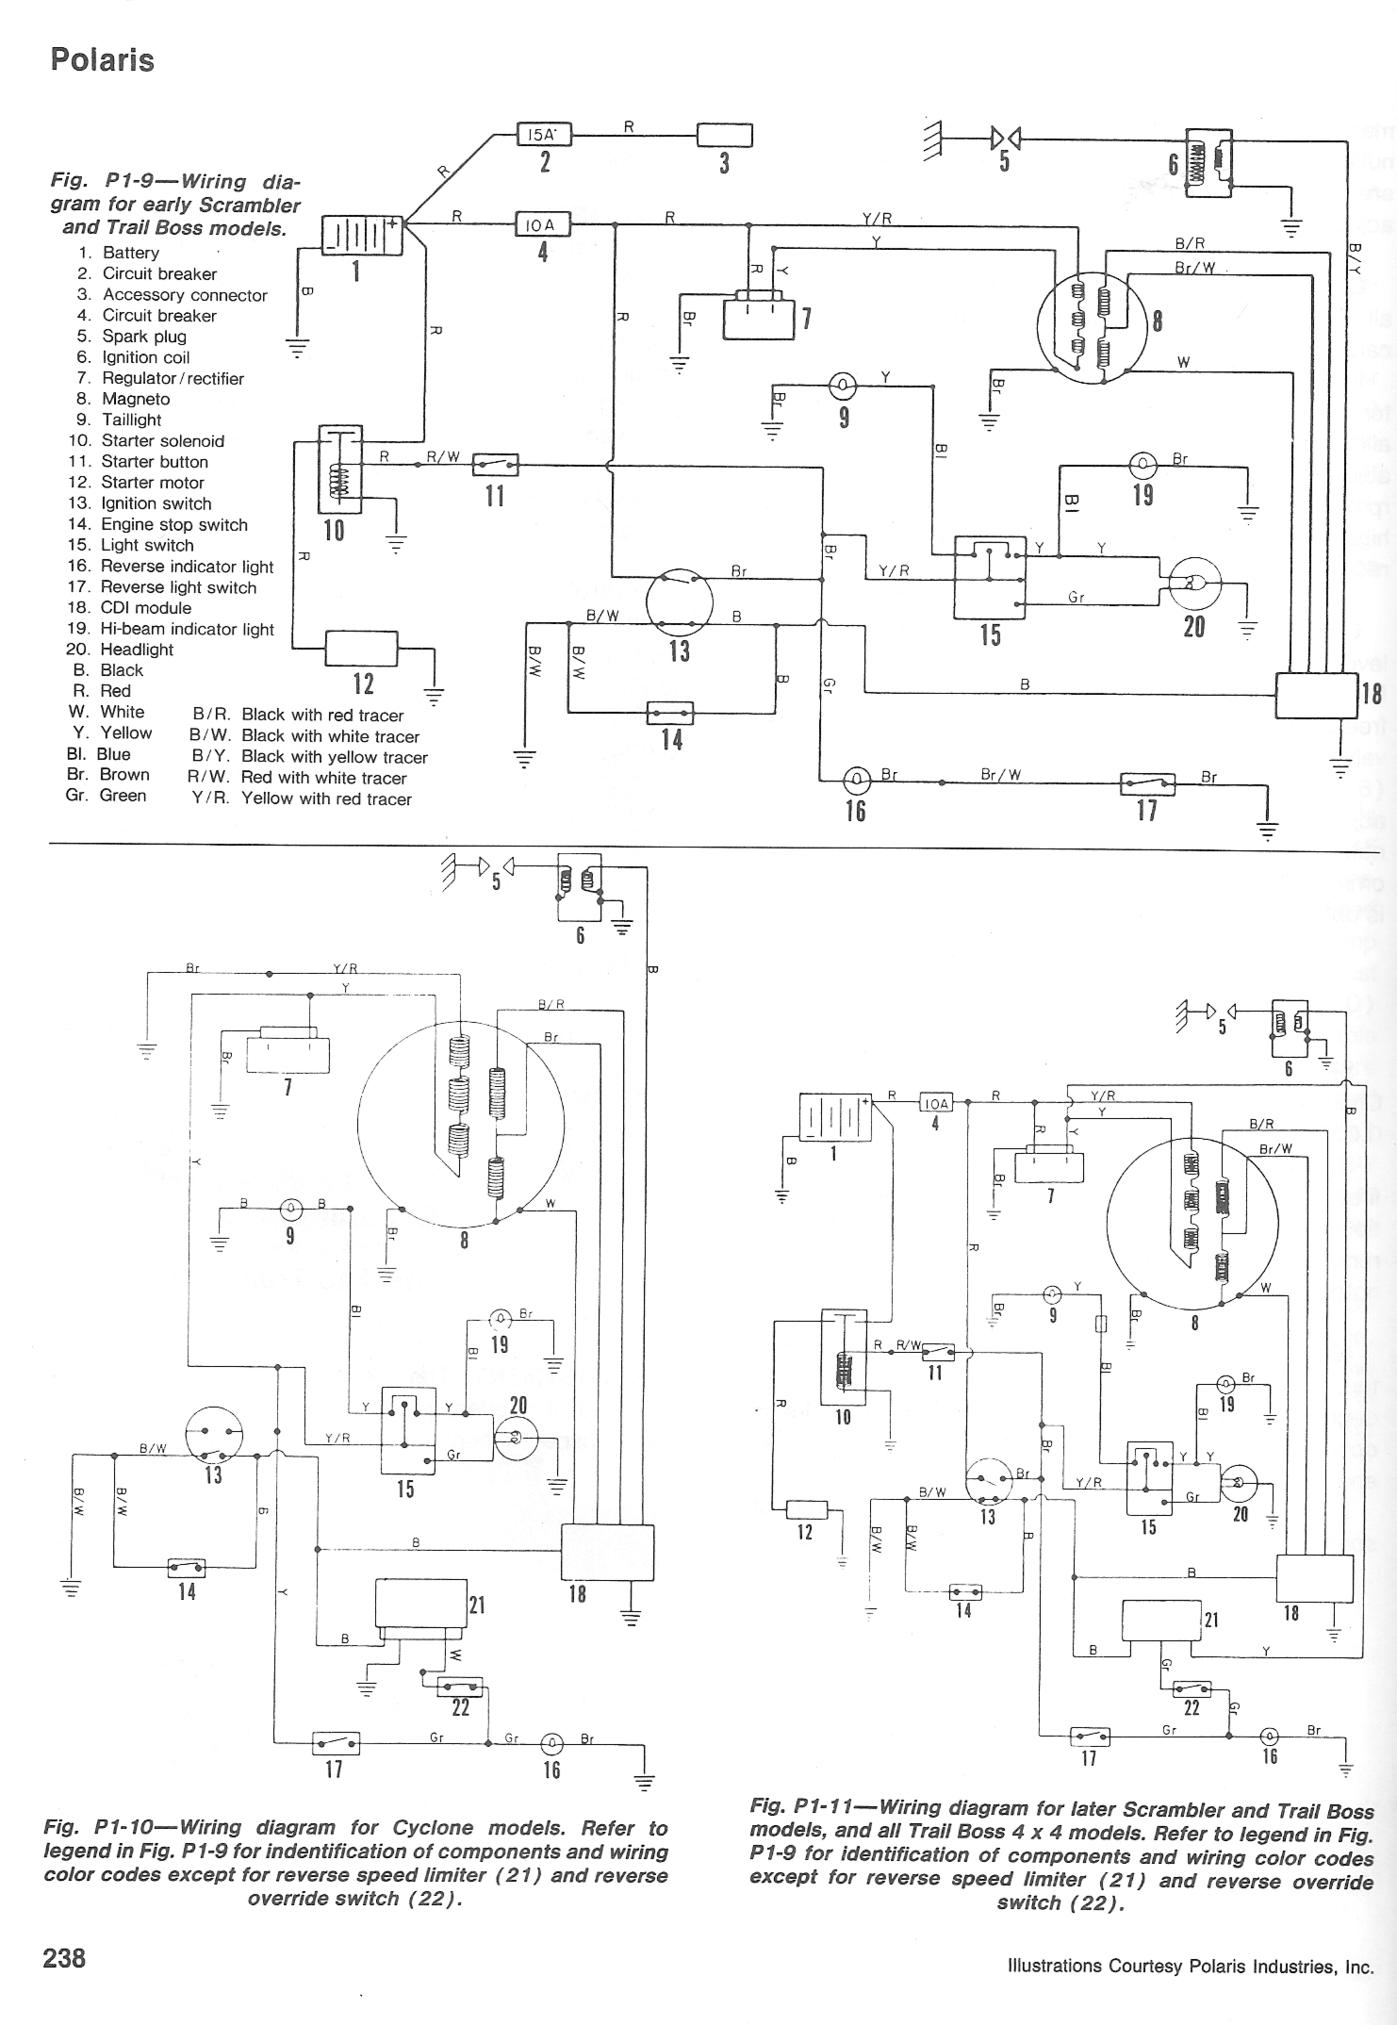 2003 polaris trail boss wiring schematic 3wheeler world    polaris     3wheeler world    polaris